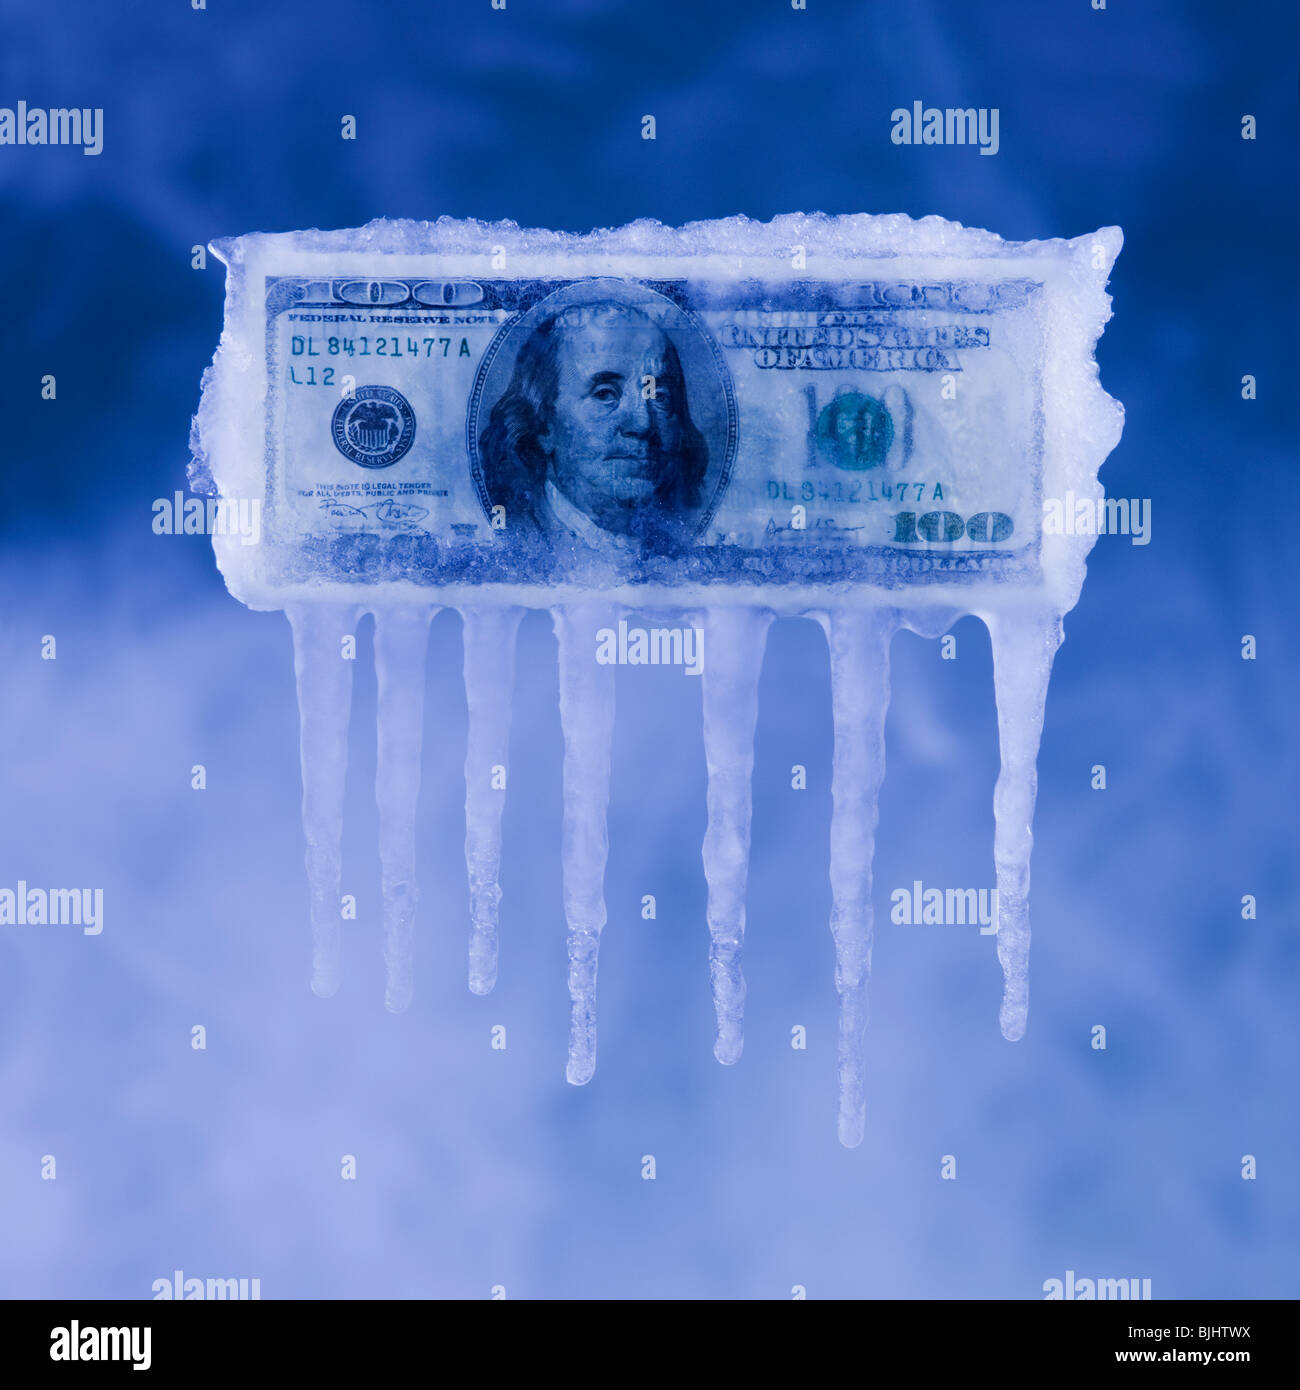 Money covered in ice - Stock Image